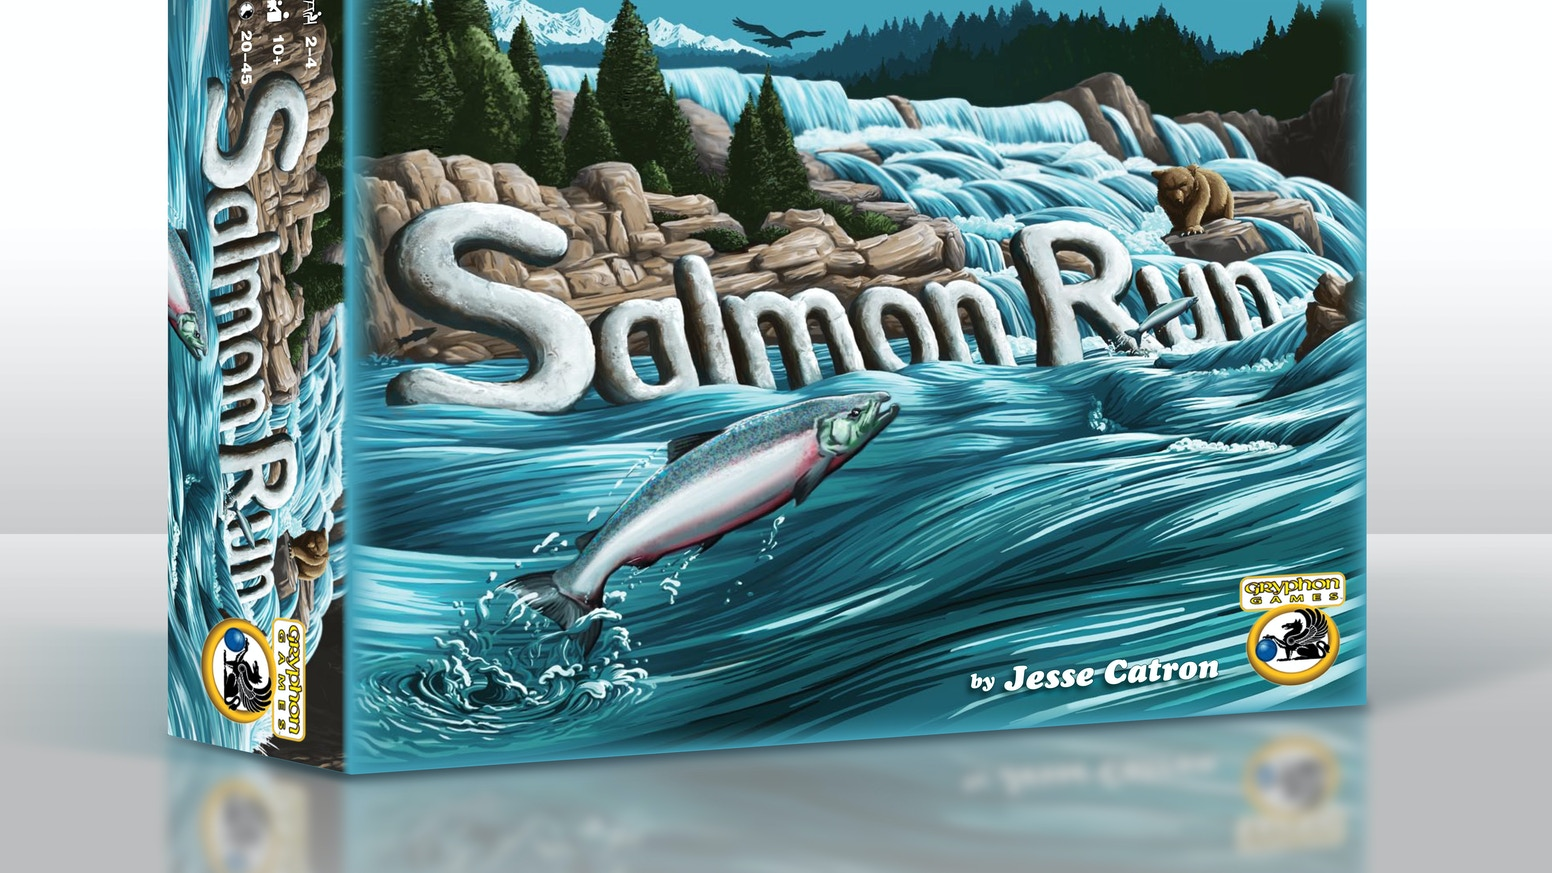 Enjoy a fast-paced racing game for everyone! Rapids, waterfalls, bears, & eagles all await the salmon on their quest upriver to spawn.